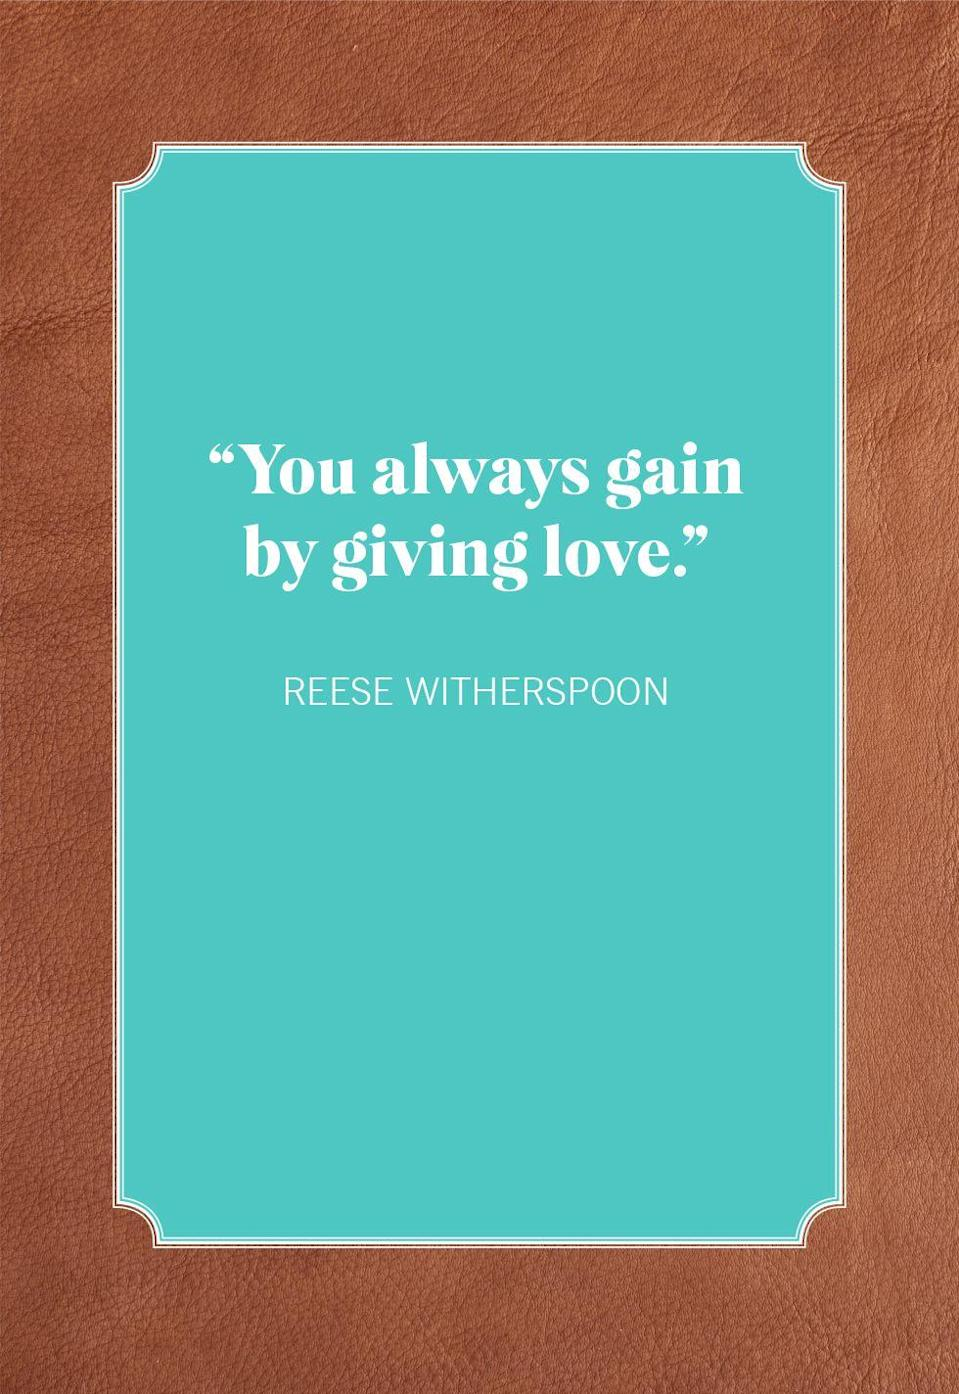 "<p>""You always gain by giving love.""</p>"